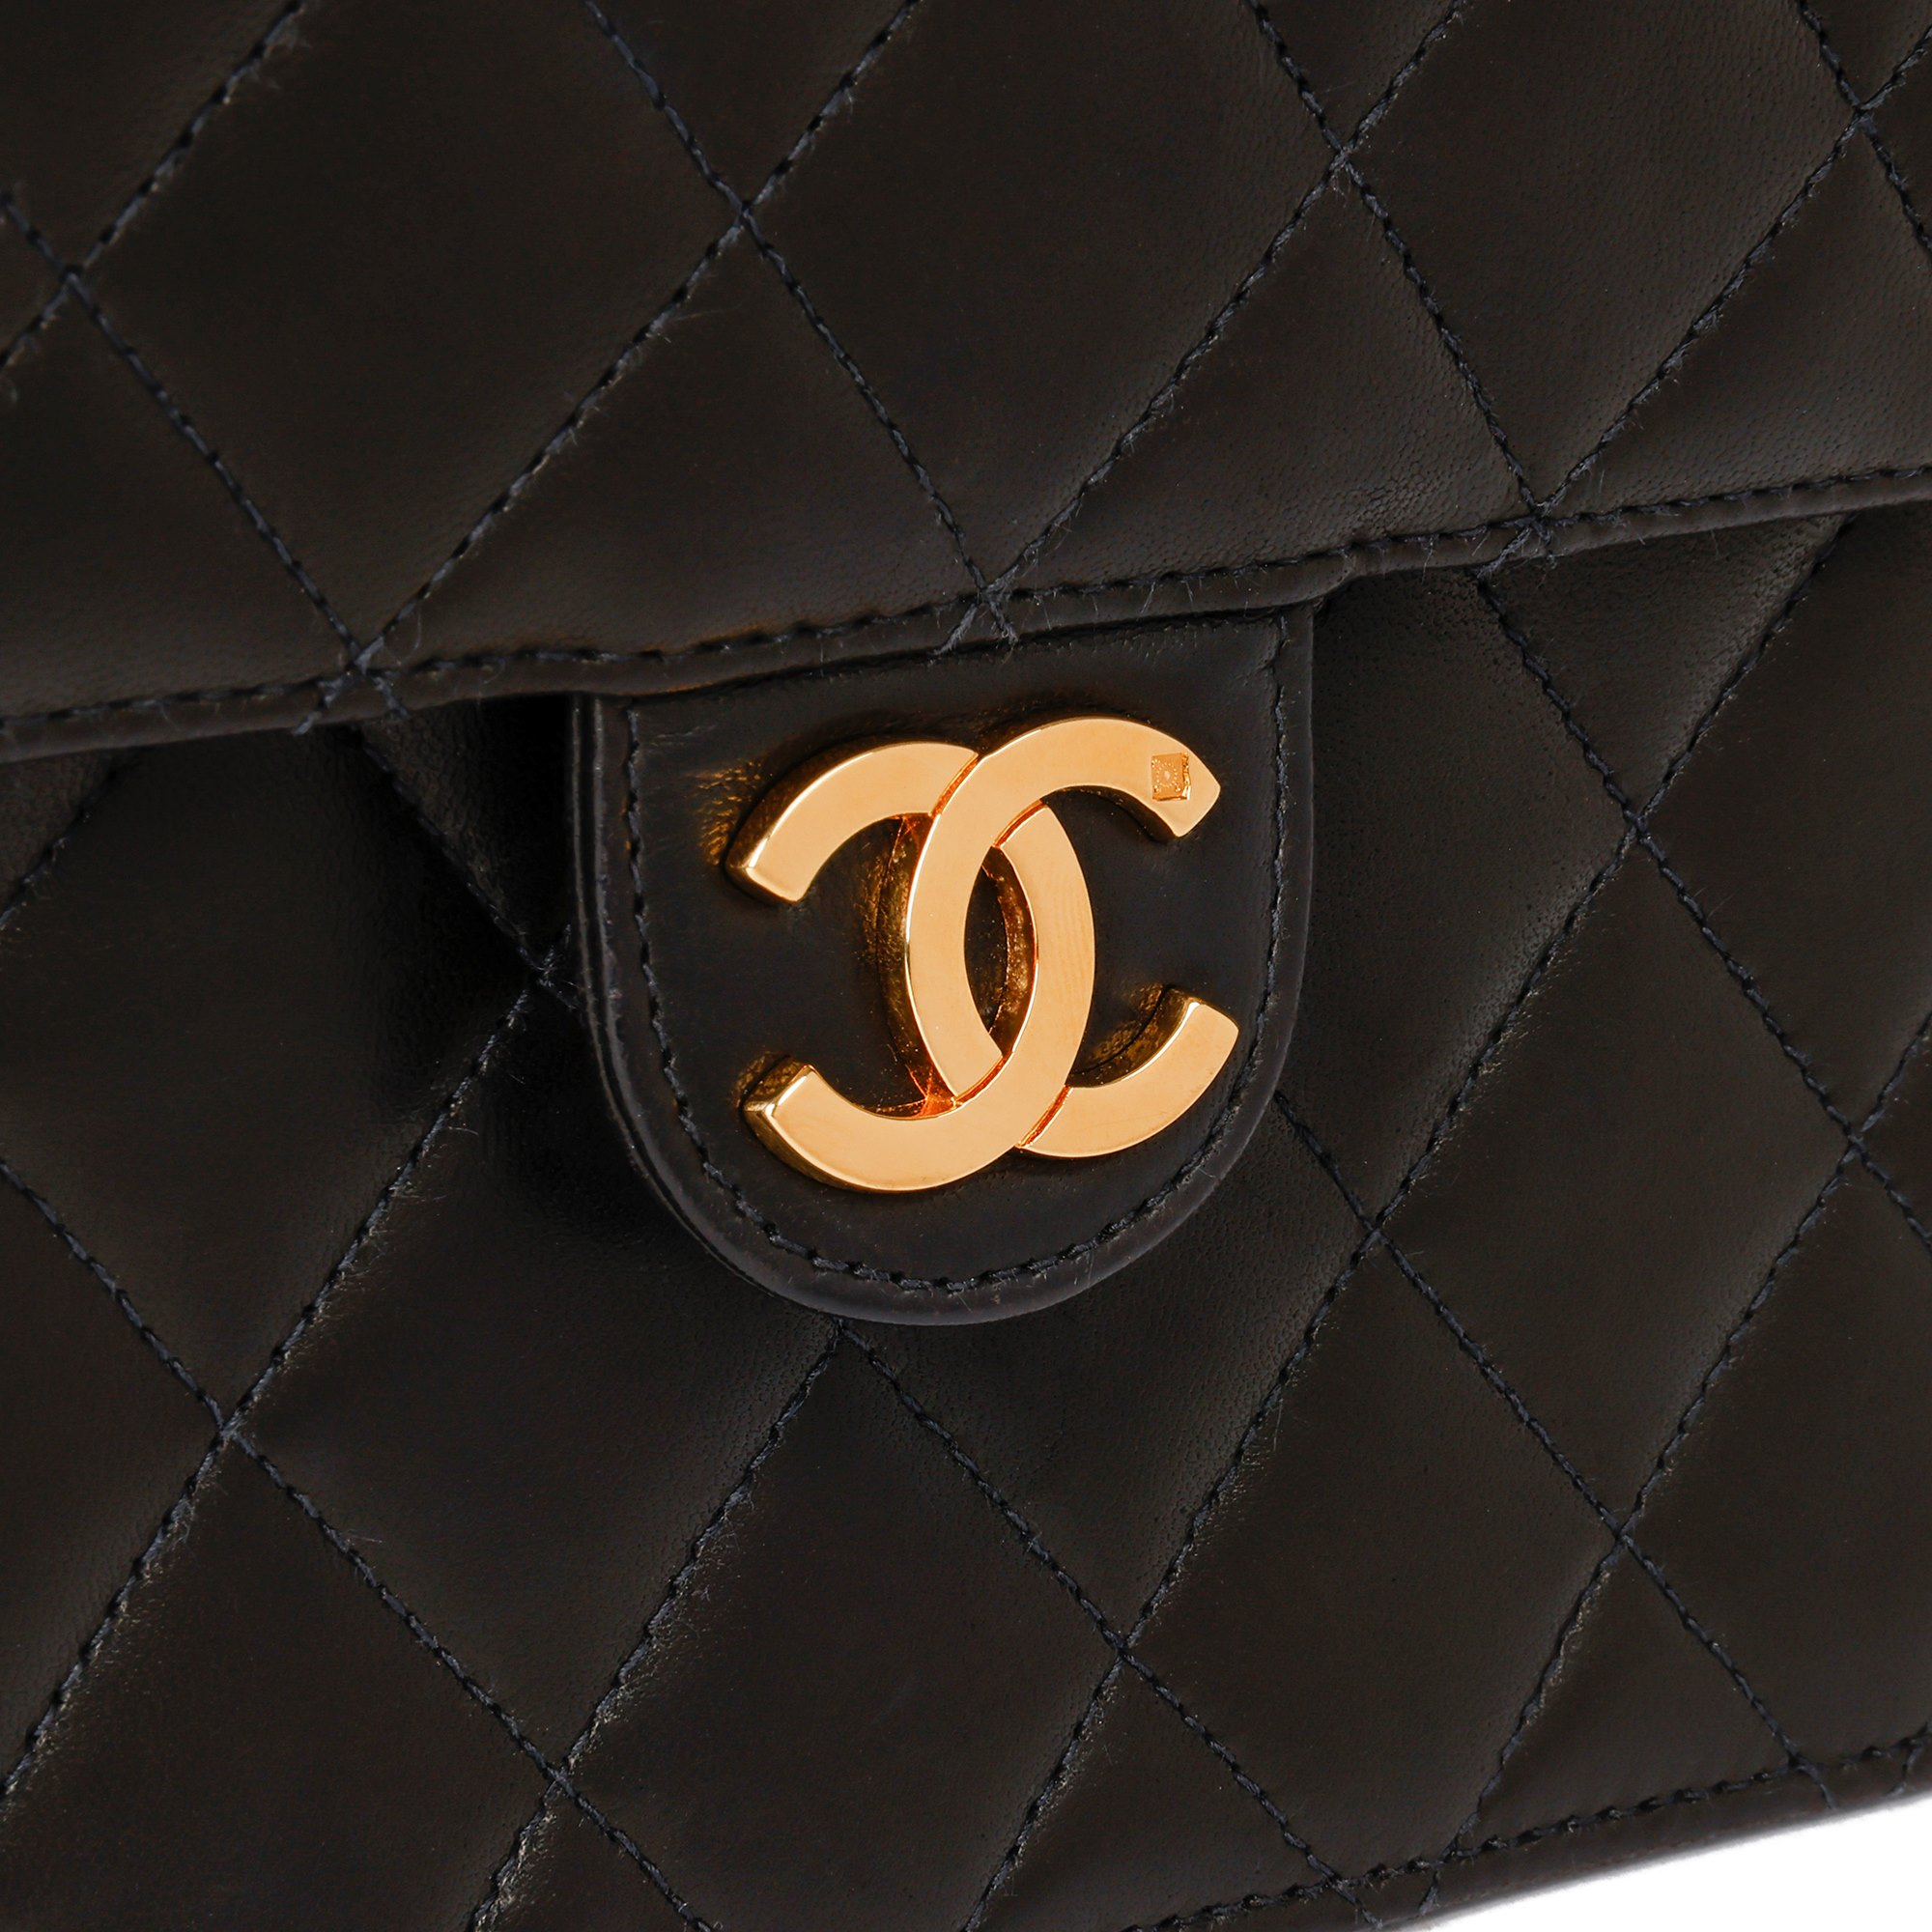 Chanel Black Quilted Lambskin Leather Vintage Small Classic Single Flap Bag